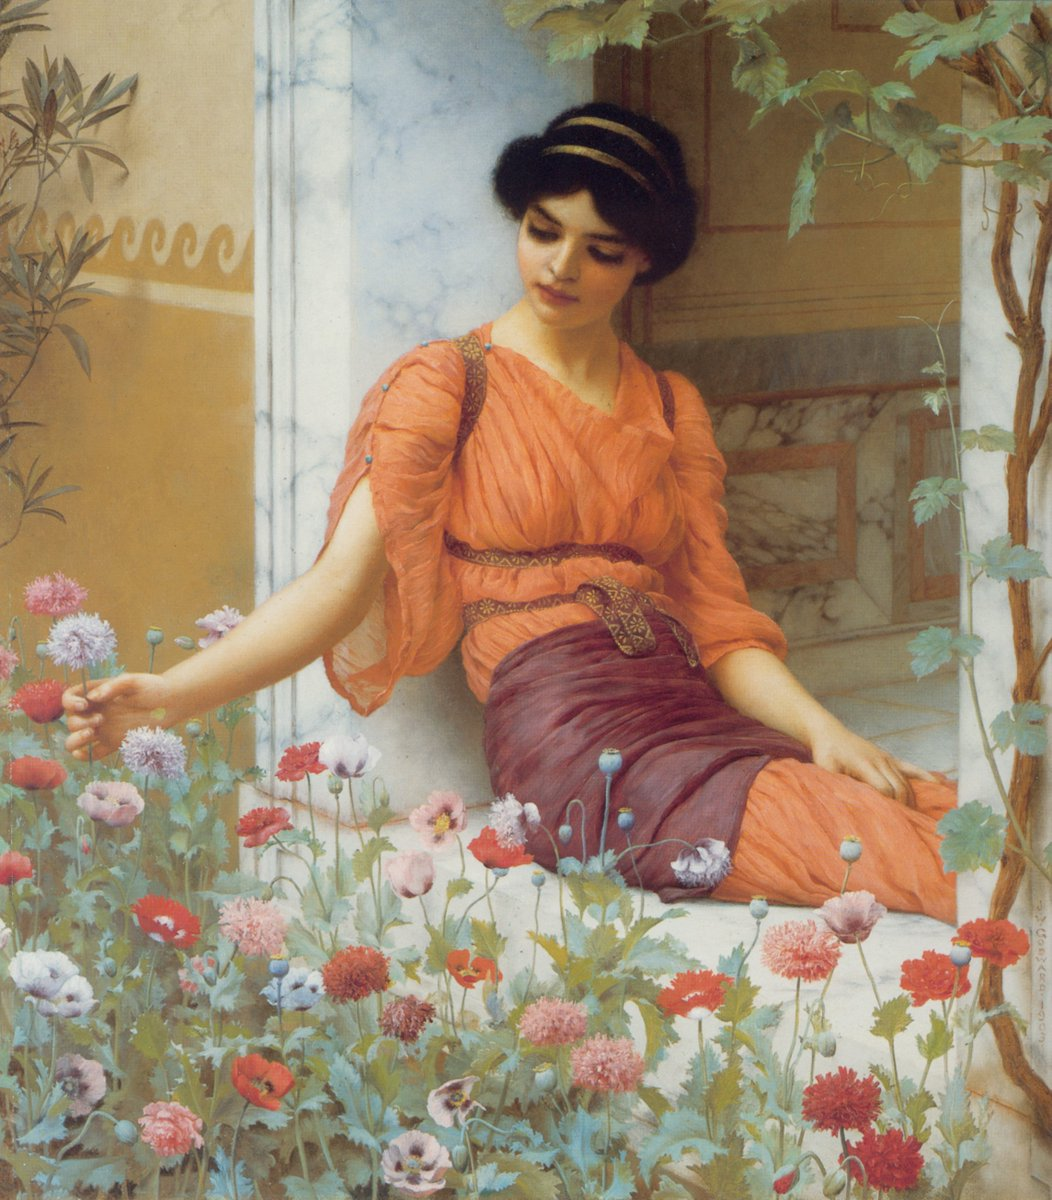 """Summer Flowers, 1903"" ""Nerissa ,1906"" John William Godward (9 August 1861 – 13 December 1922) was an English painter from the end of the Neo-Classicist era. He was a protégé of Sir Lawrence Alma-Tadema, but his style of painting fell out of favor with the rise of modern art."